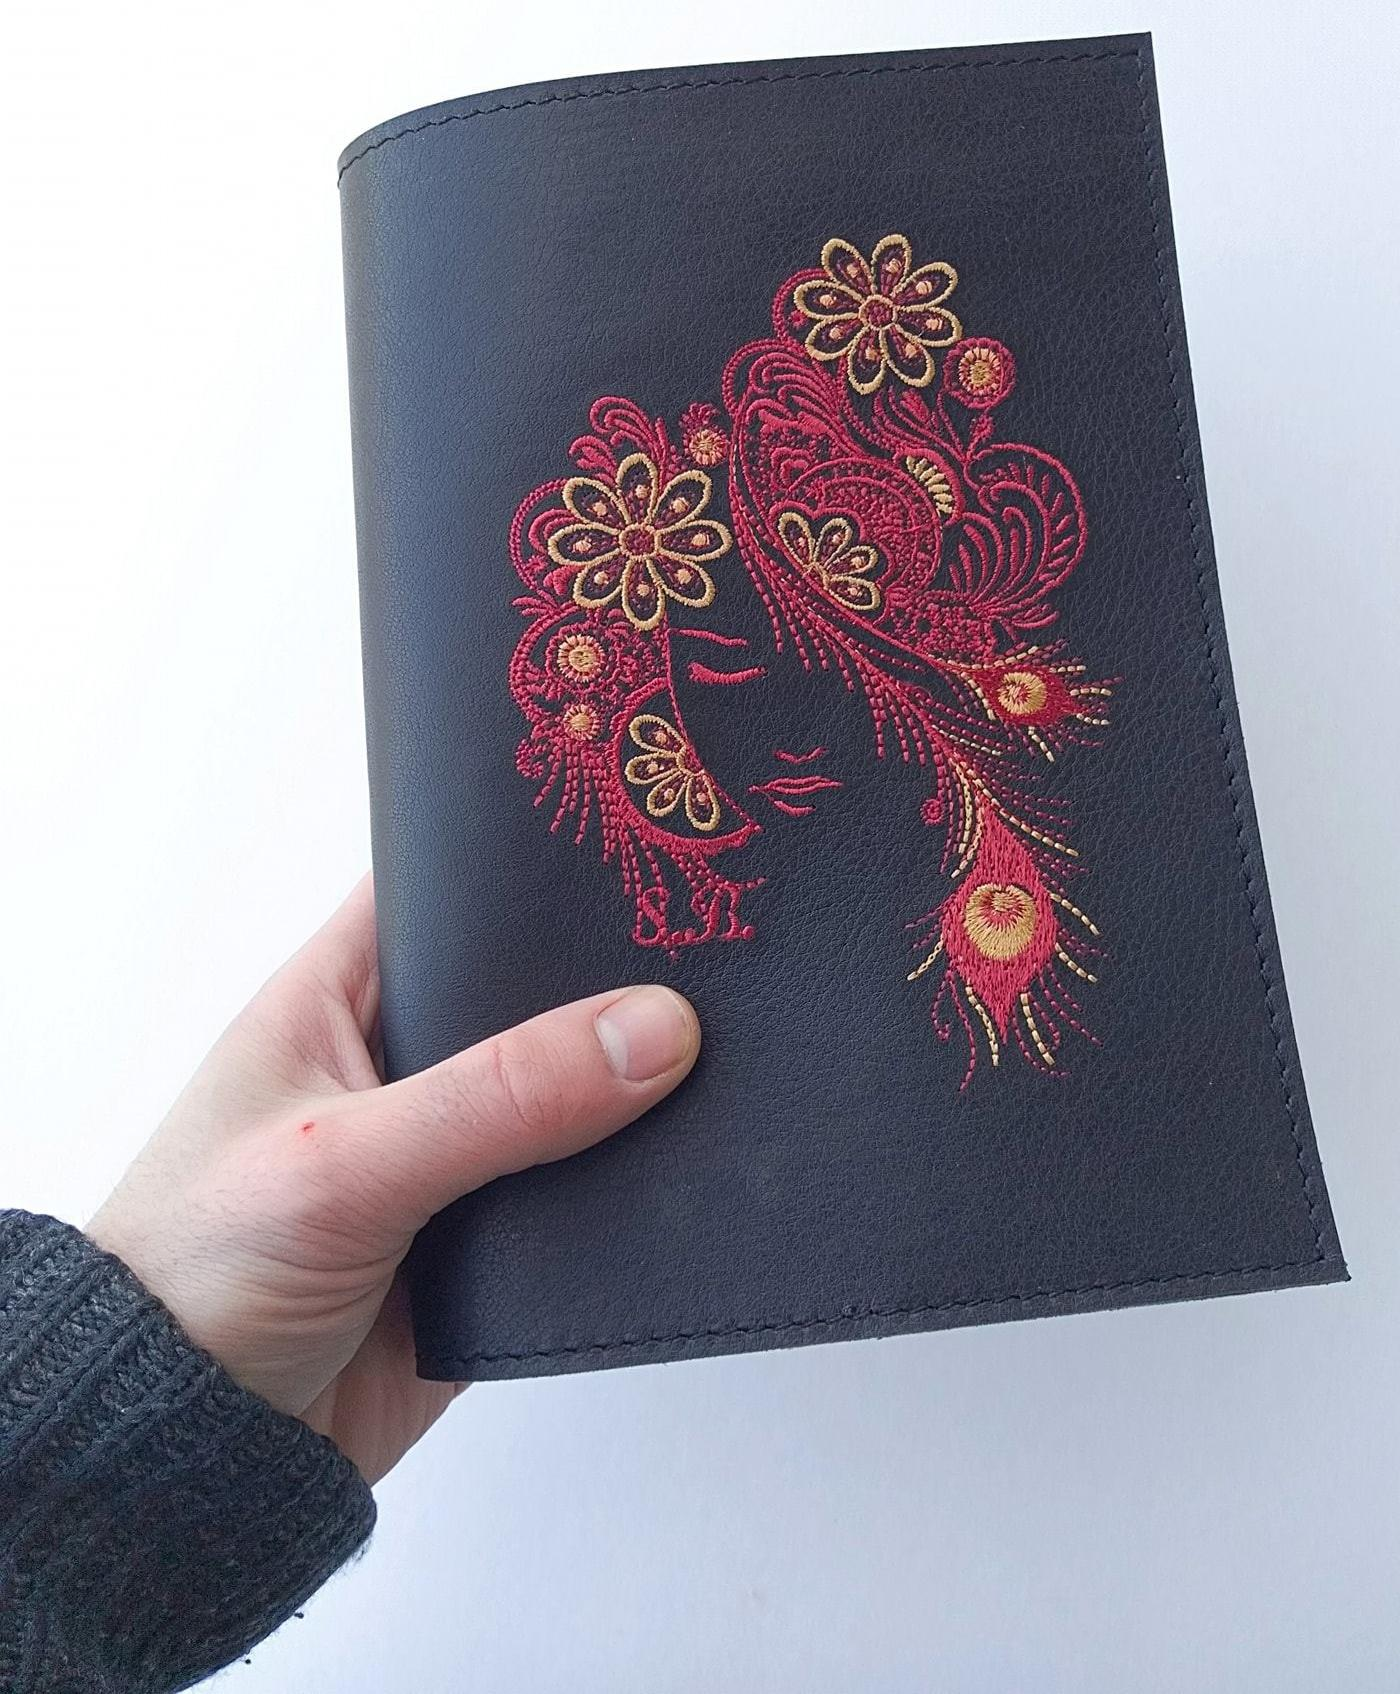 Embroidered cover for notepad with Firebird design